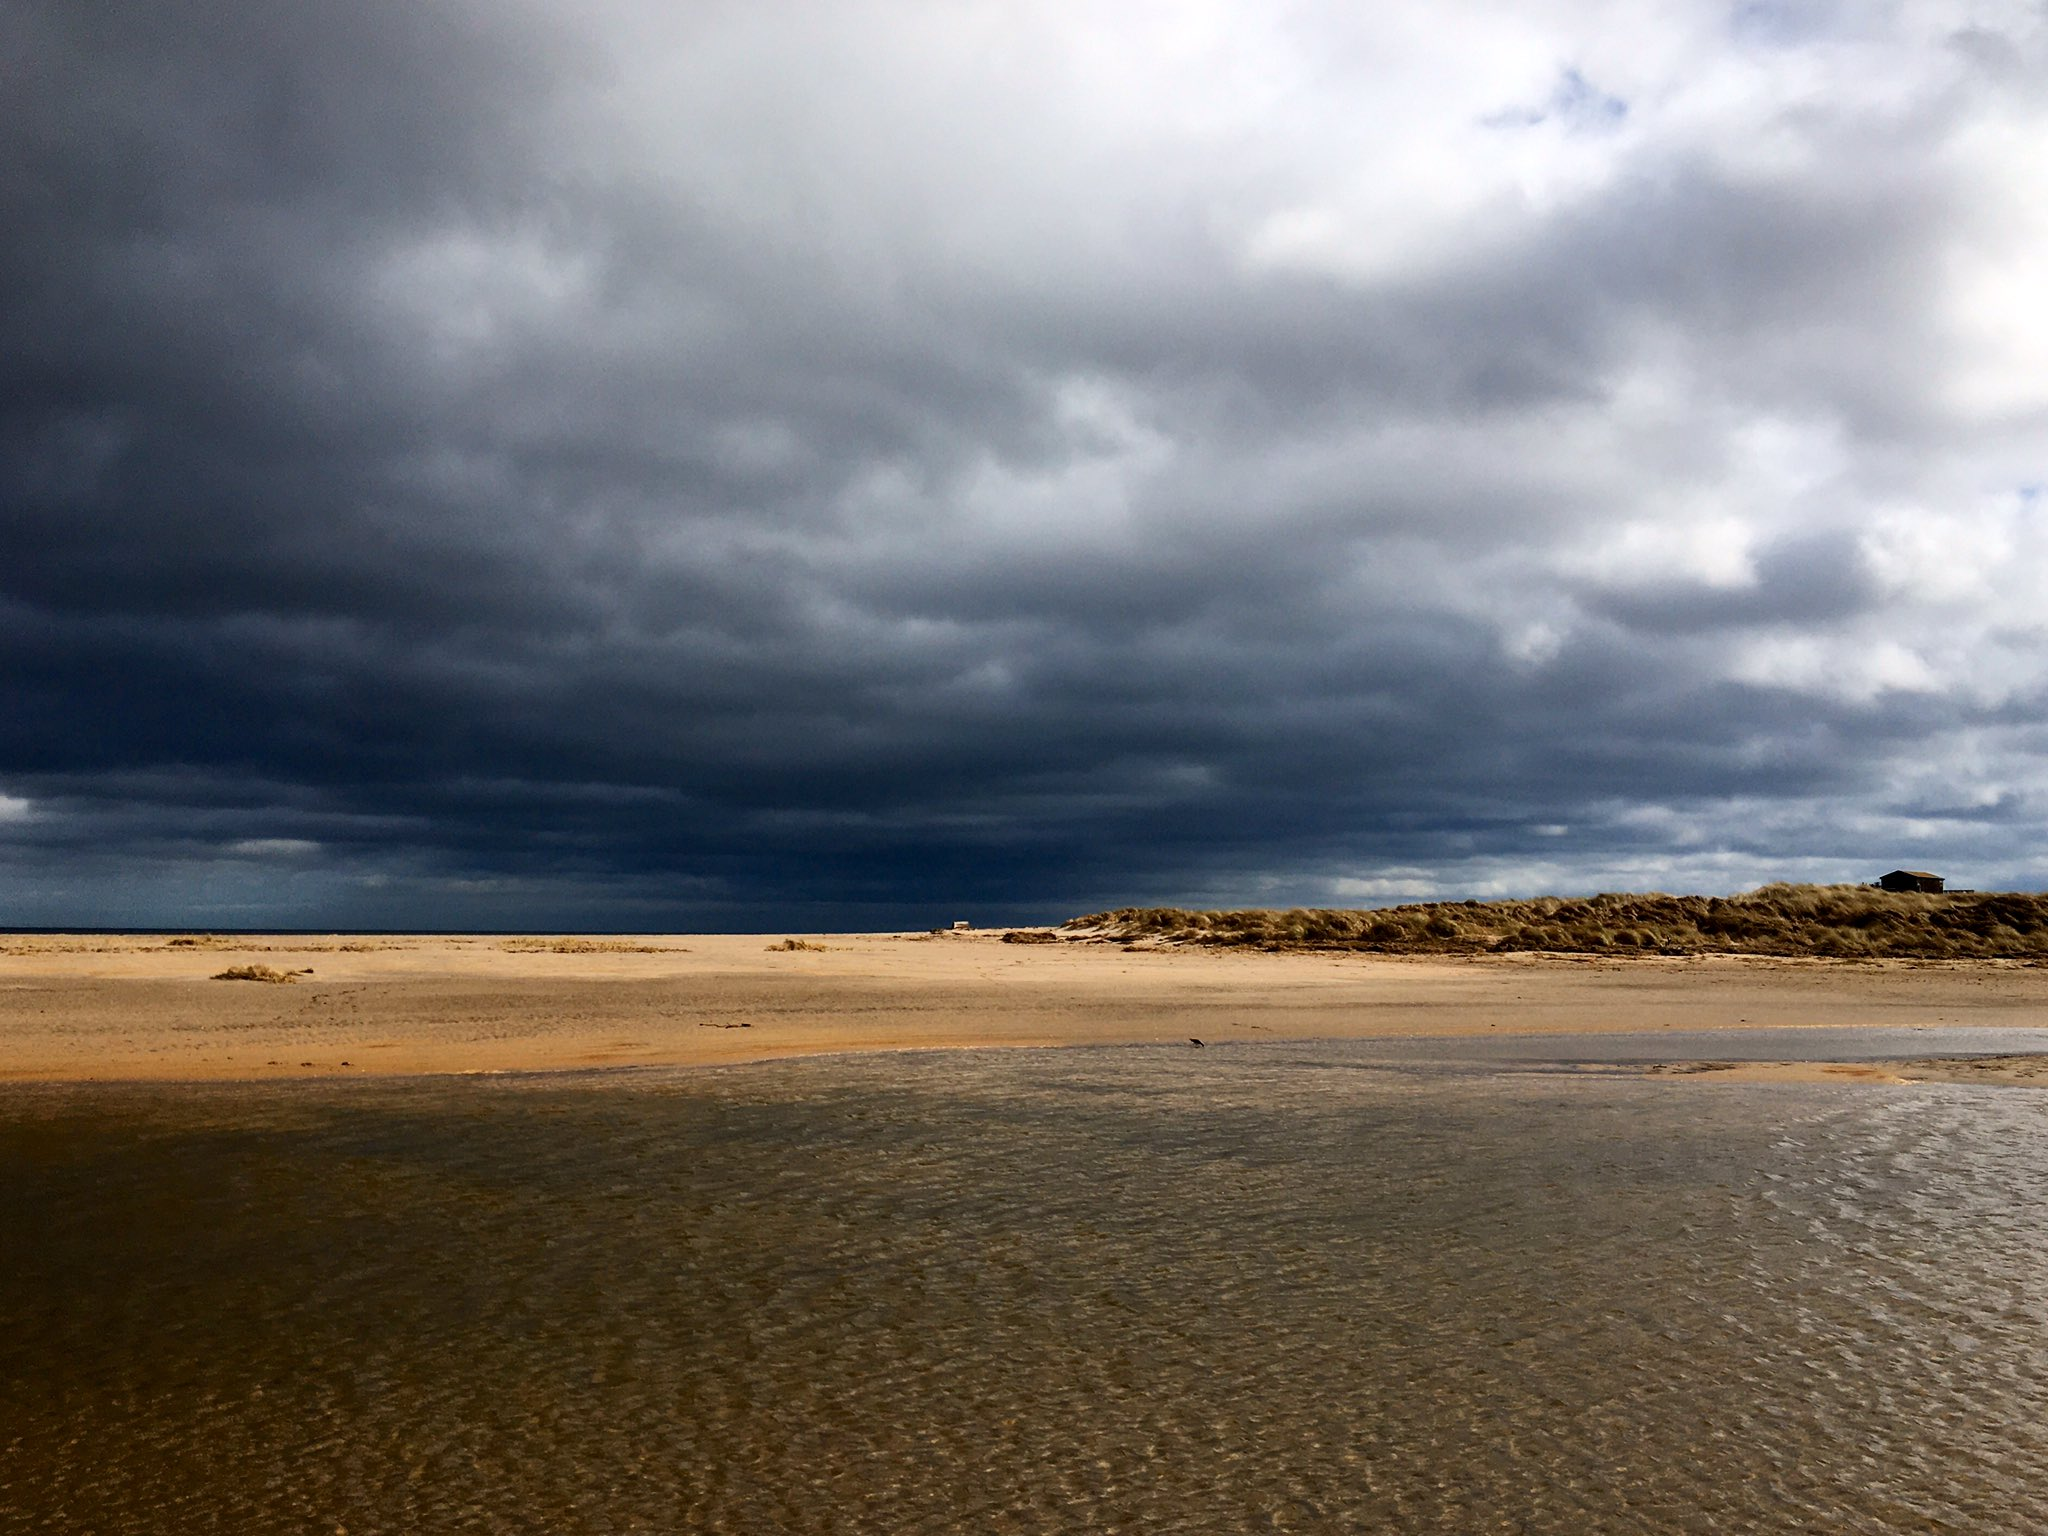 @petenothing I took this on 15th March at Beadnell in Northumberland. By pure chance, a long-planned visit to an old school friend was timed just a week before lockdown. So glad to have had this last gasp of sea air. https://t.co/6uglWHIsPb